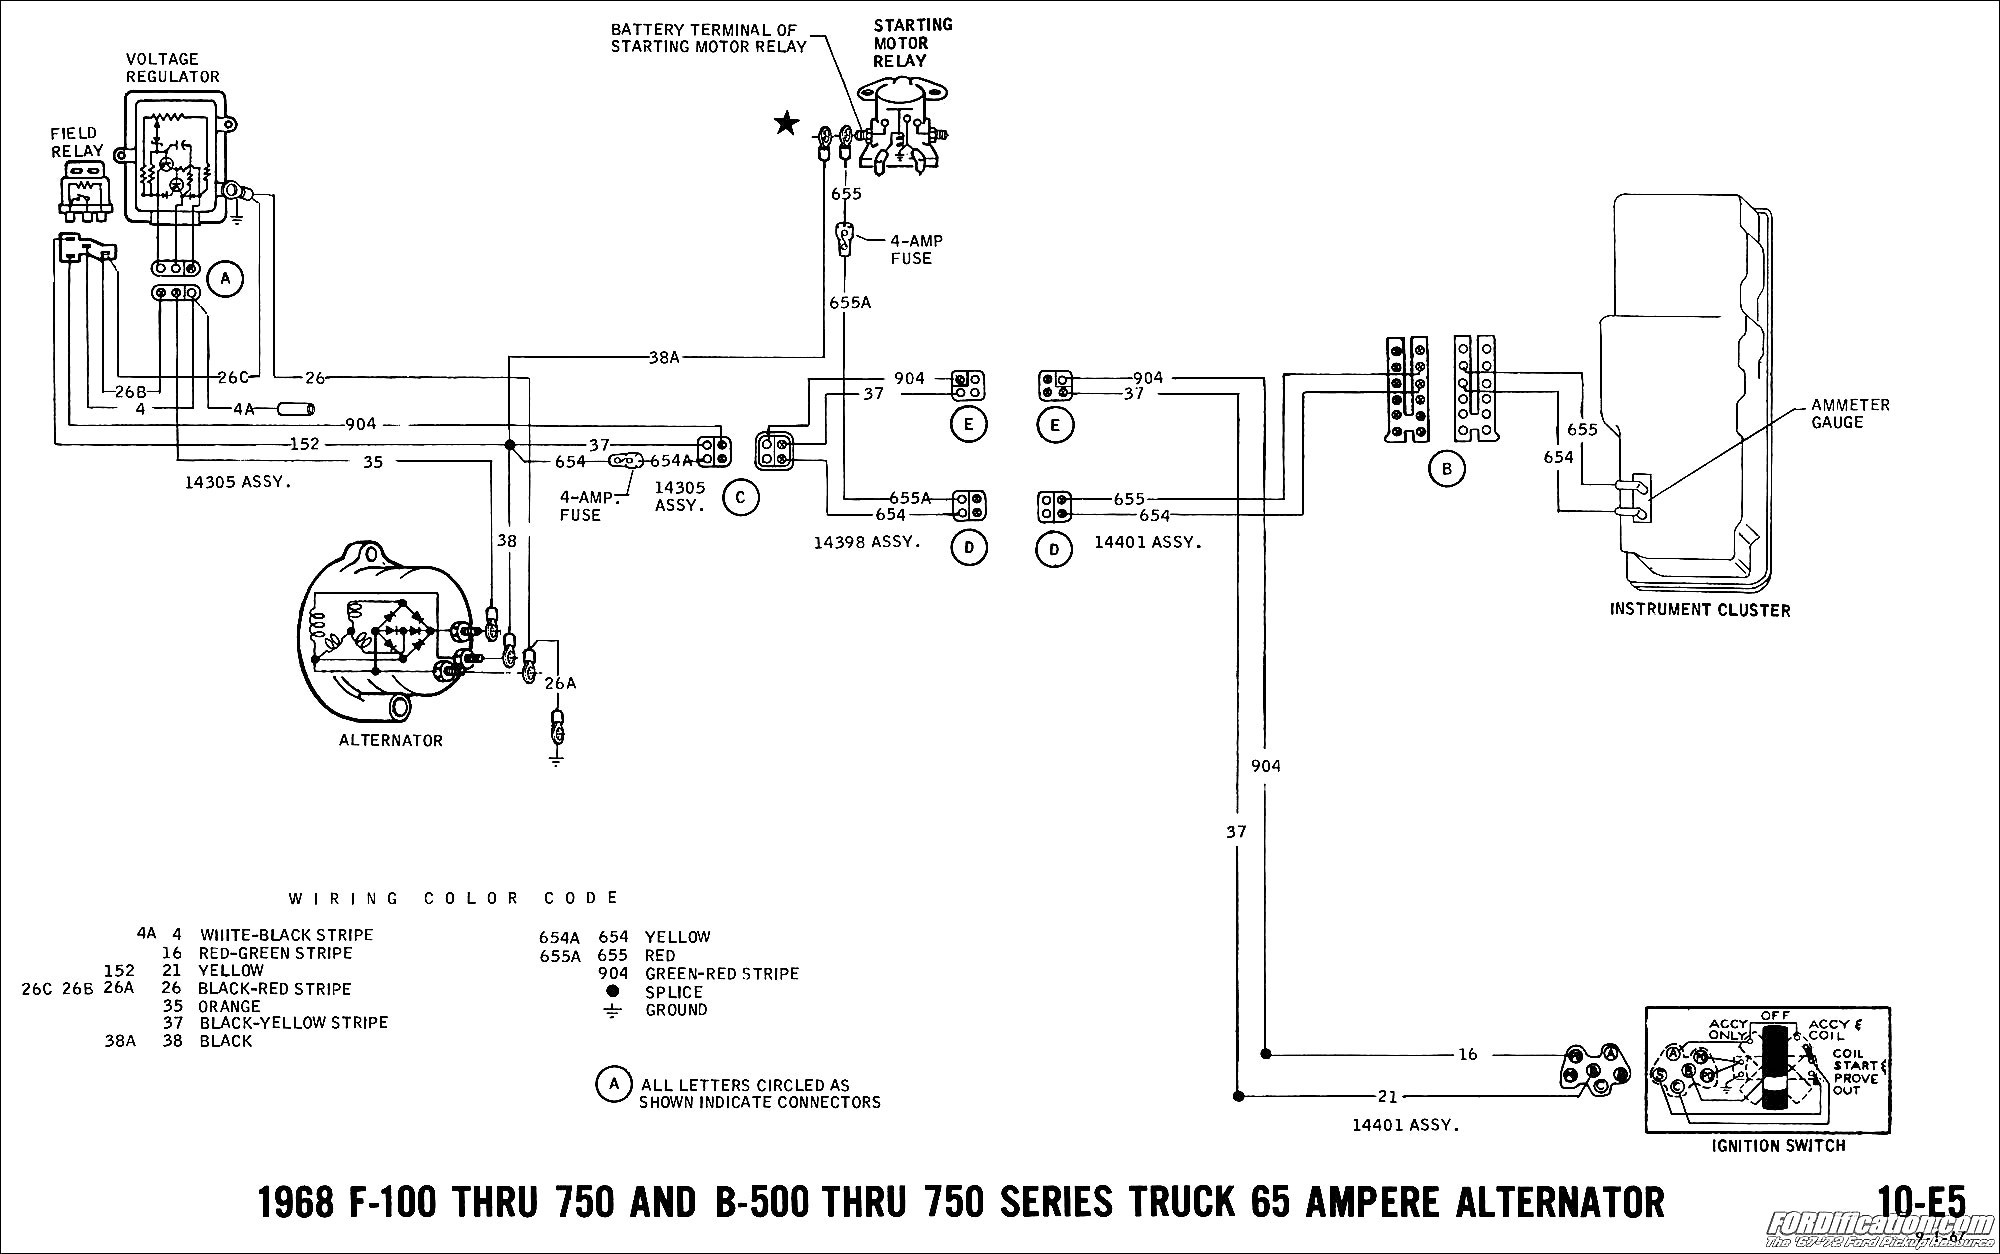 Lt1 Wiring Diagram Charging Electrical Diagrams Trusted 4t60e